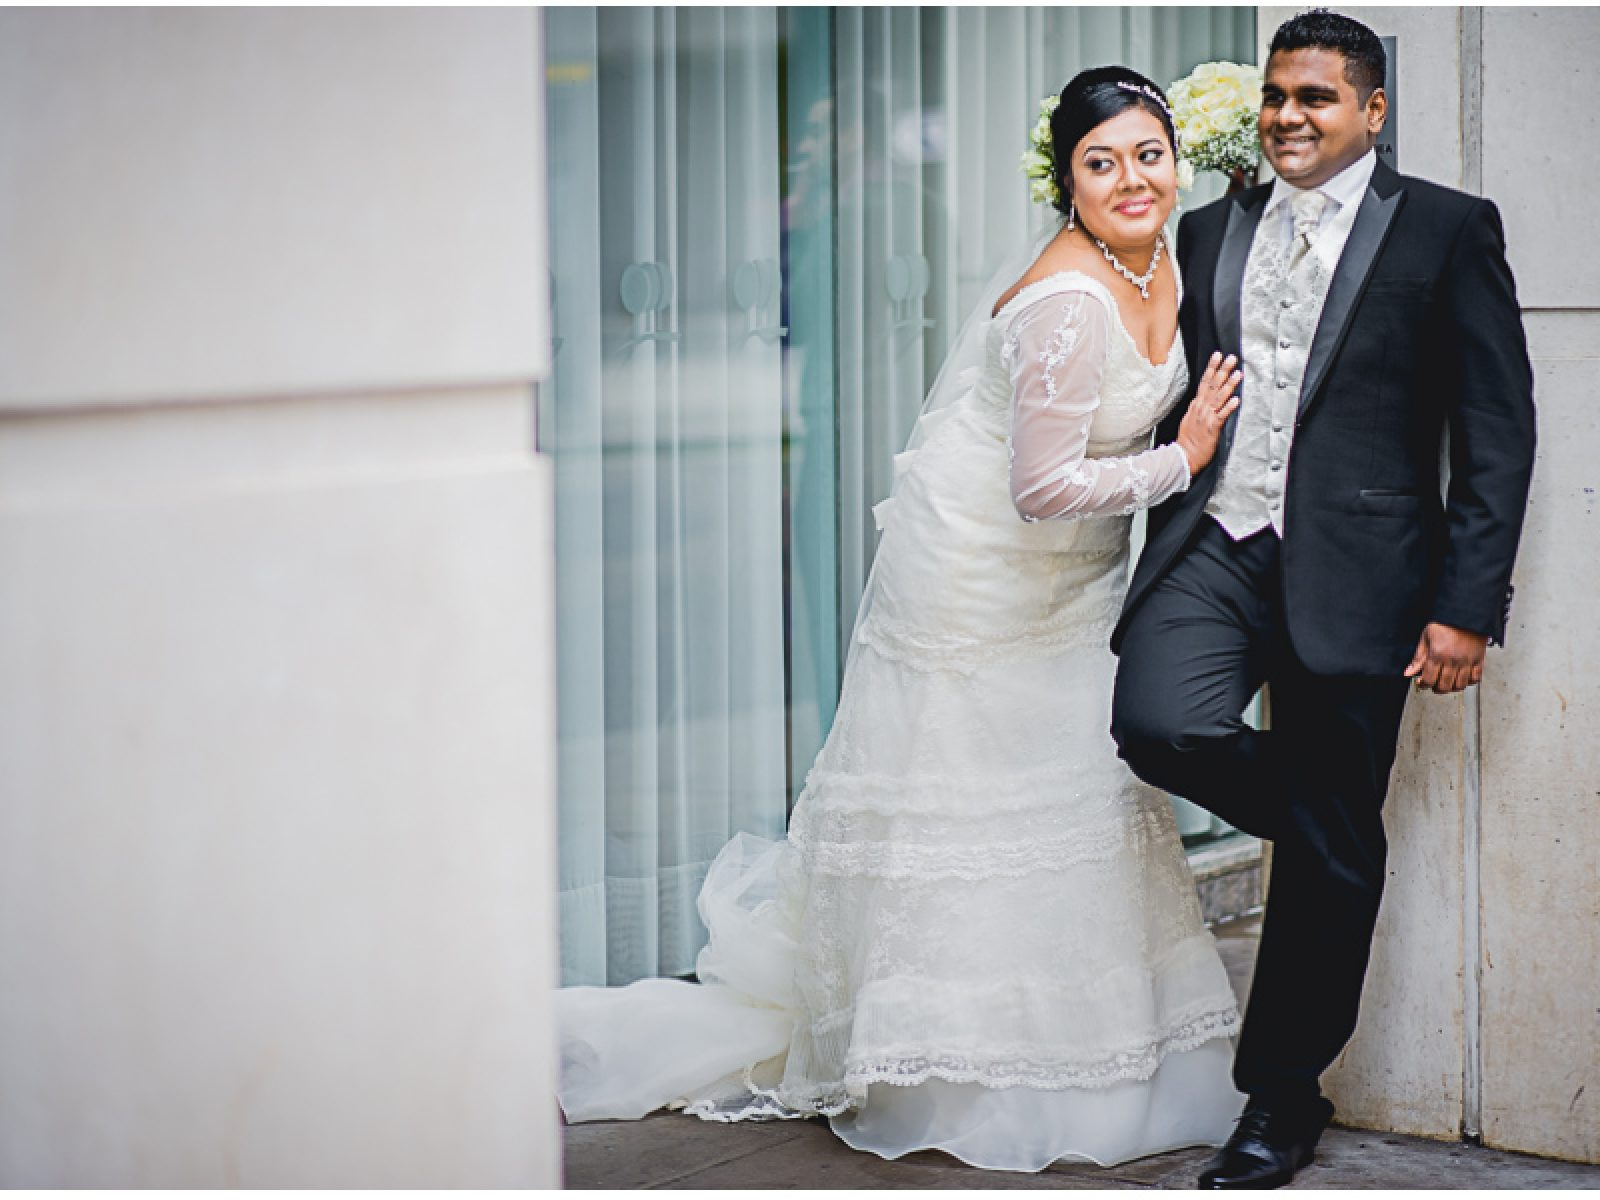 281 1600x1200 - Darshani and Anthony - wedding photographer in London